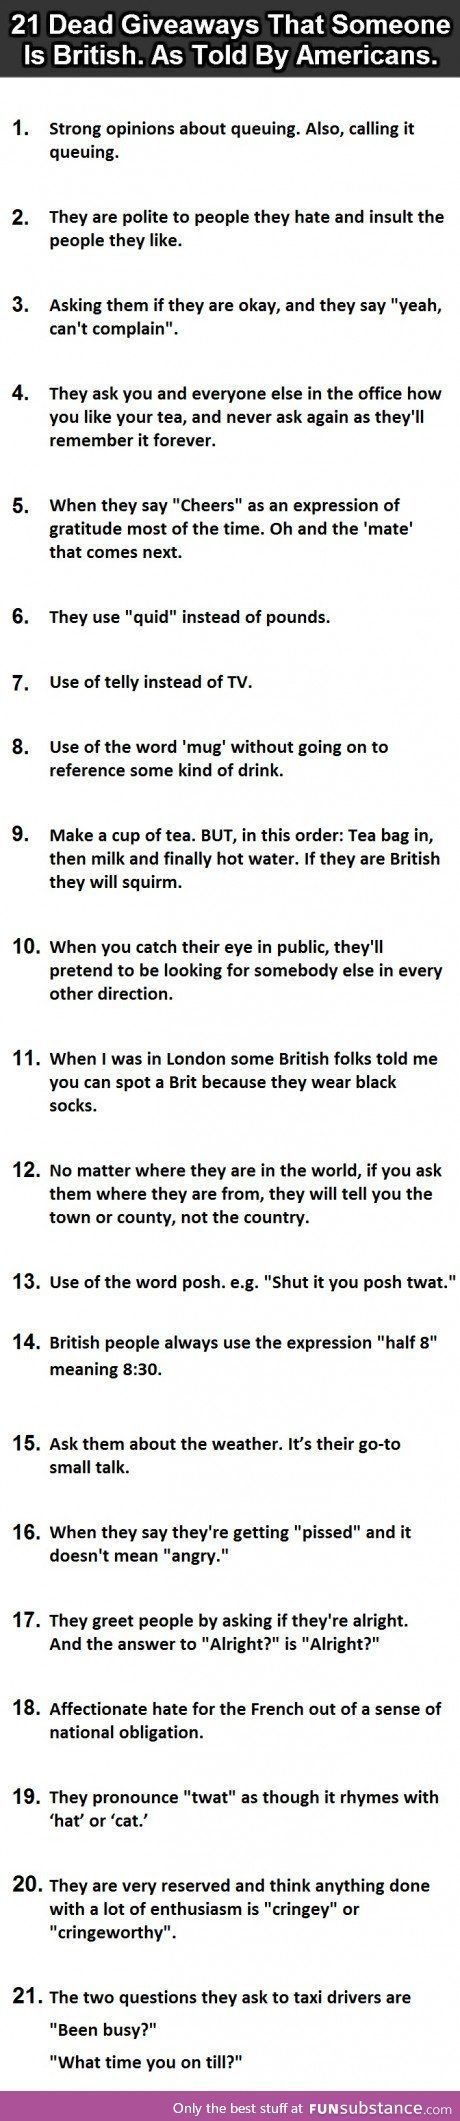 How to identify a British